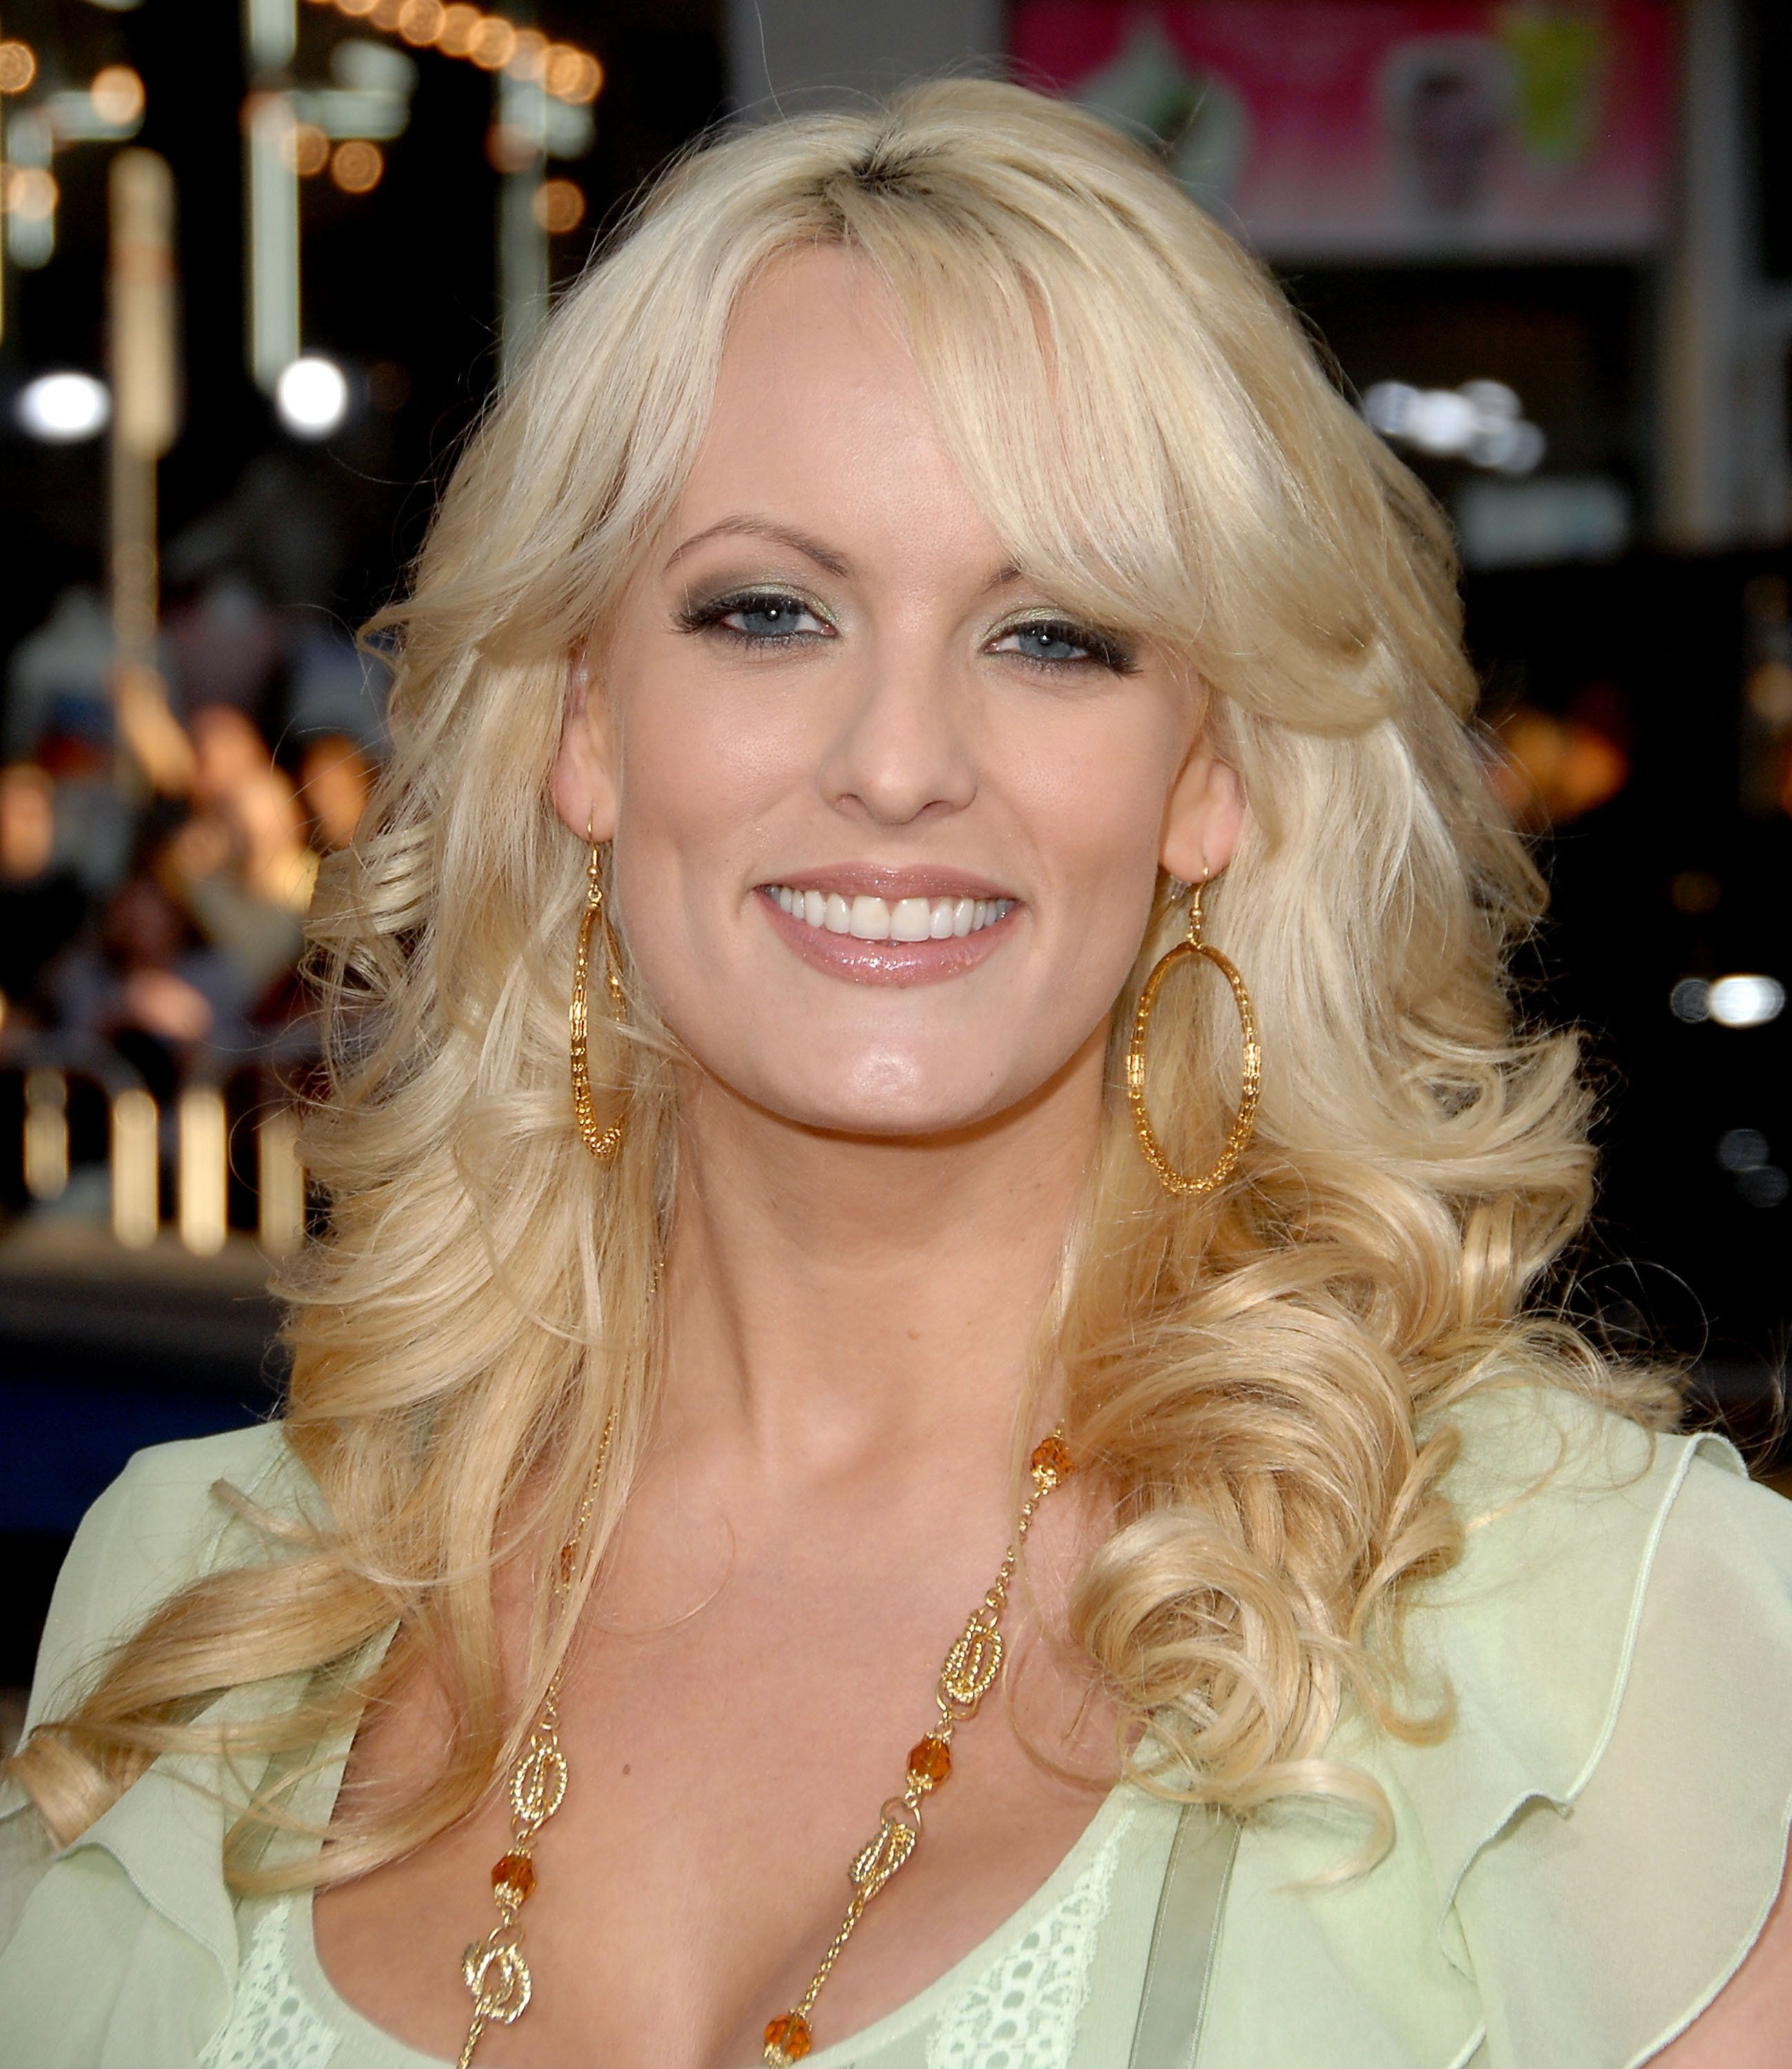 Actress Stormy Daniels arrives at the premiere 'Forgetting Sarah Marshall' at the Grauman's Chinese Theater on April 10, 2008 in Hollywood, California. (Photo by Jon Kopaloff/FilmMagic)